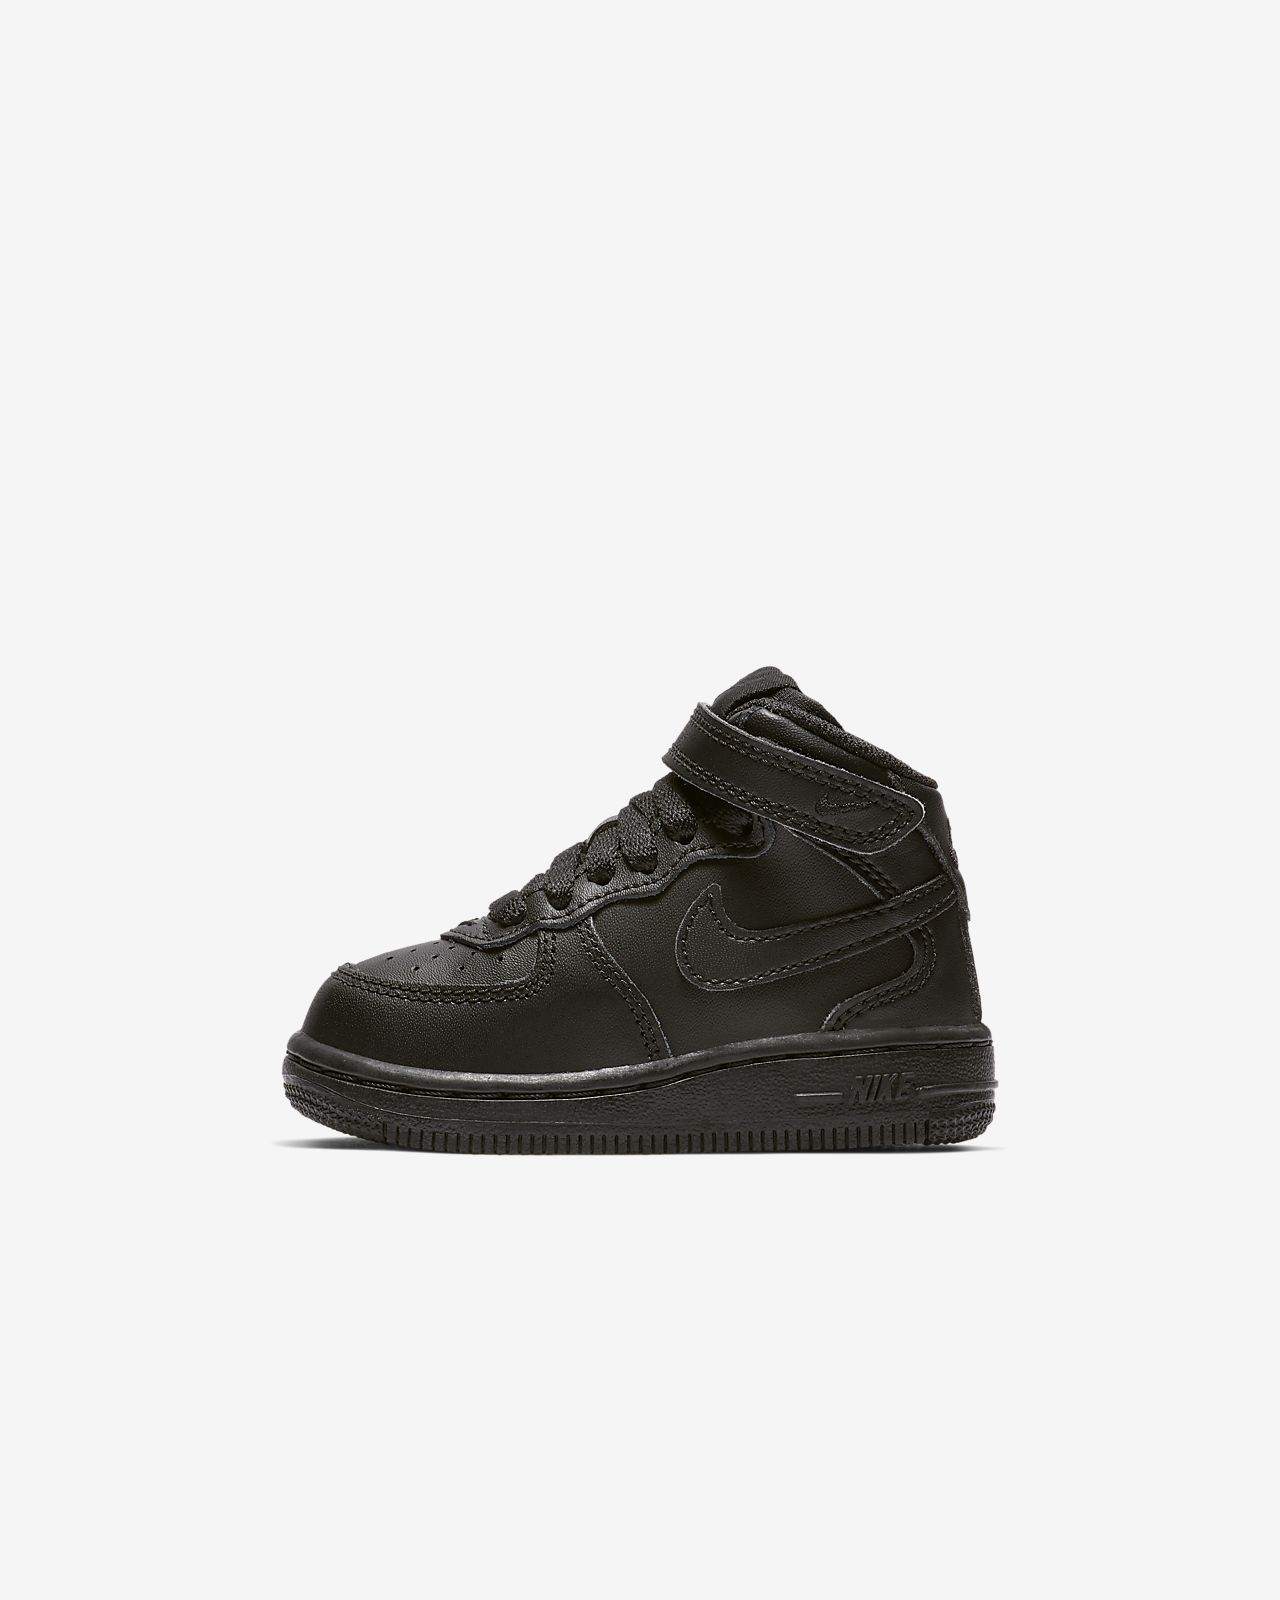 Nike Air Force 1 Mid sko for sped-/småbarn